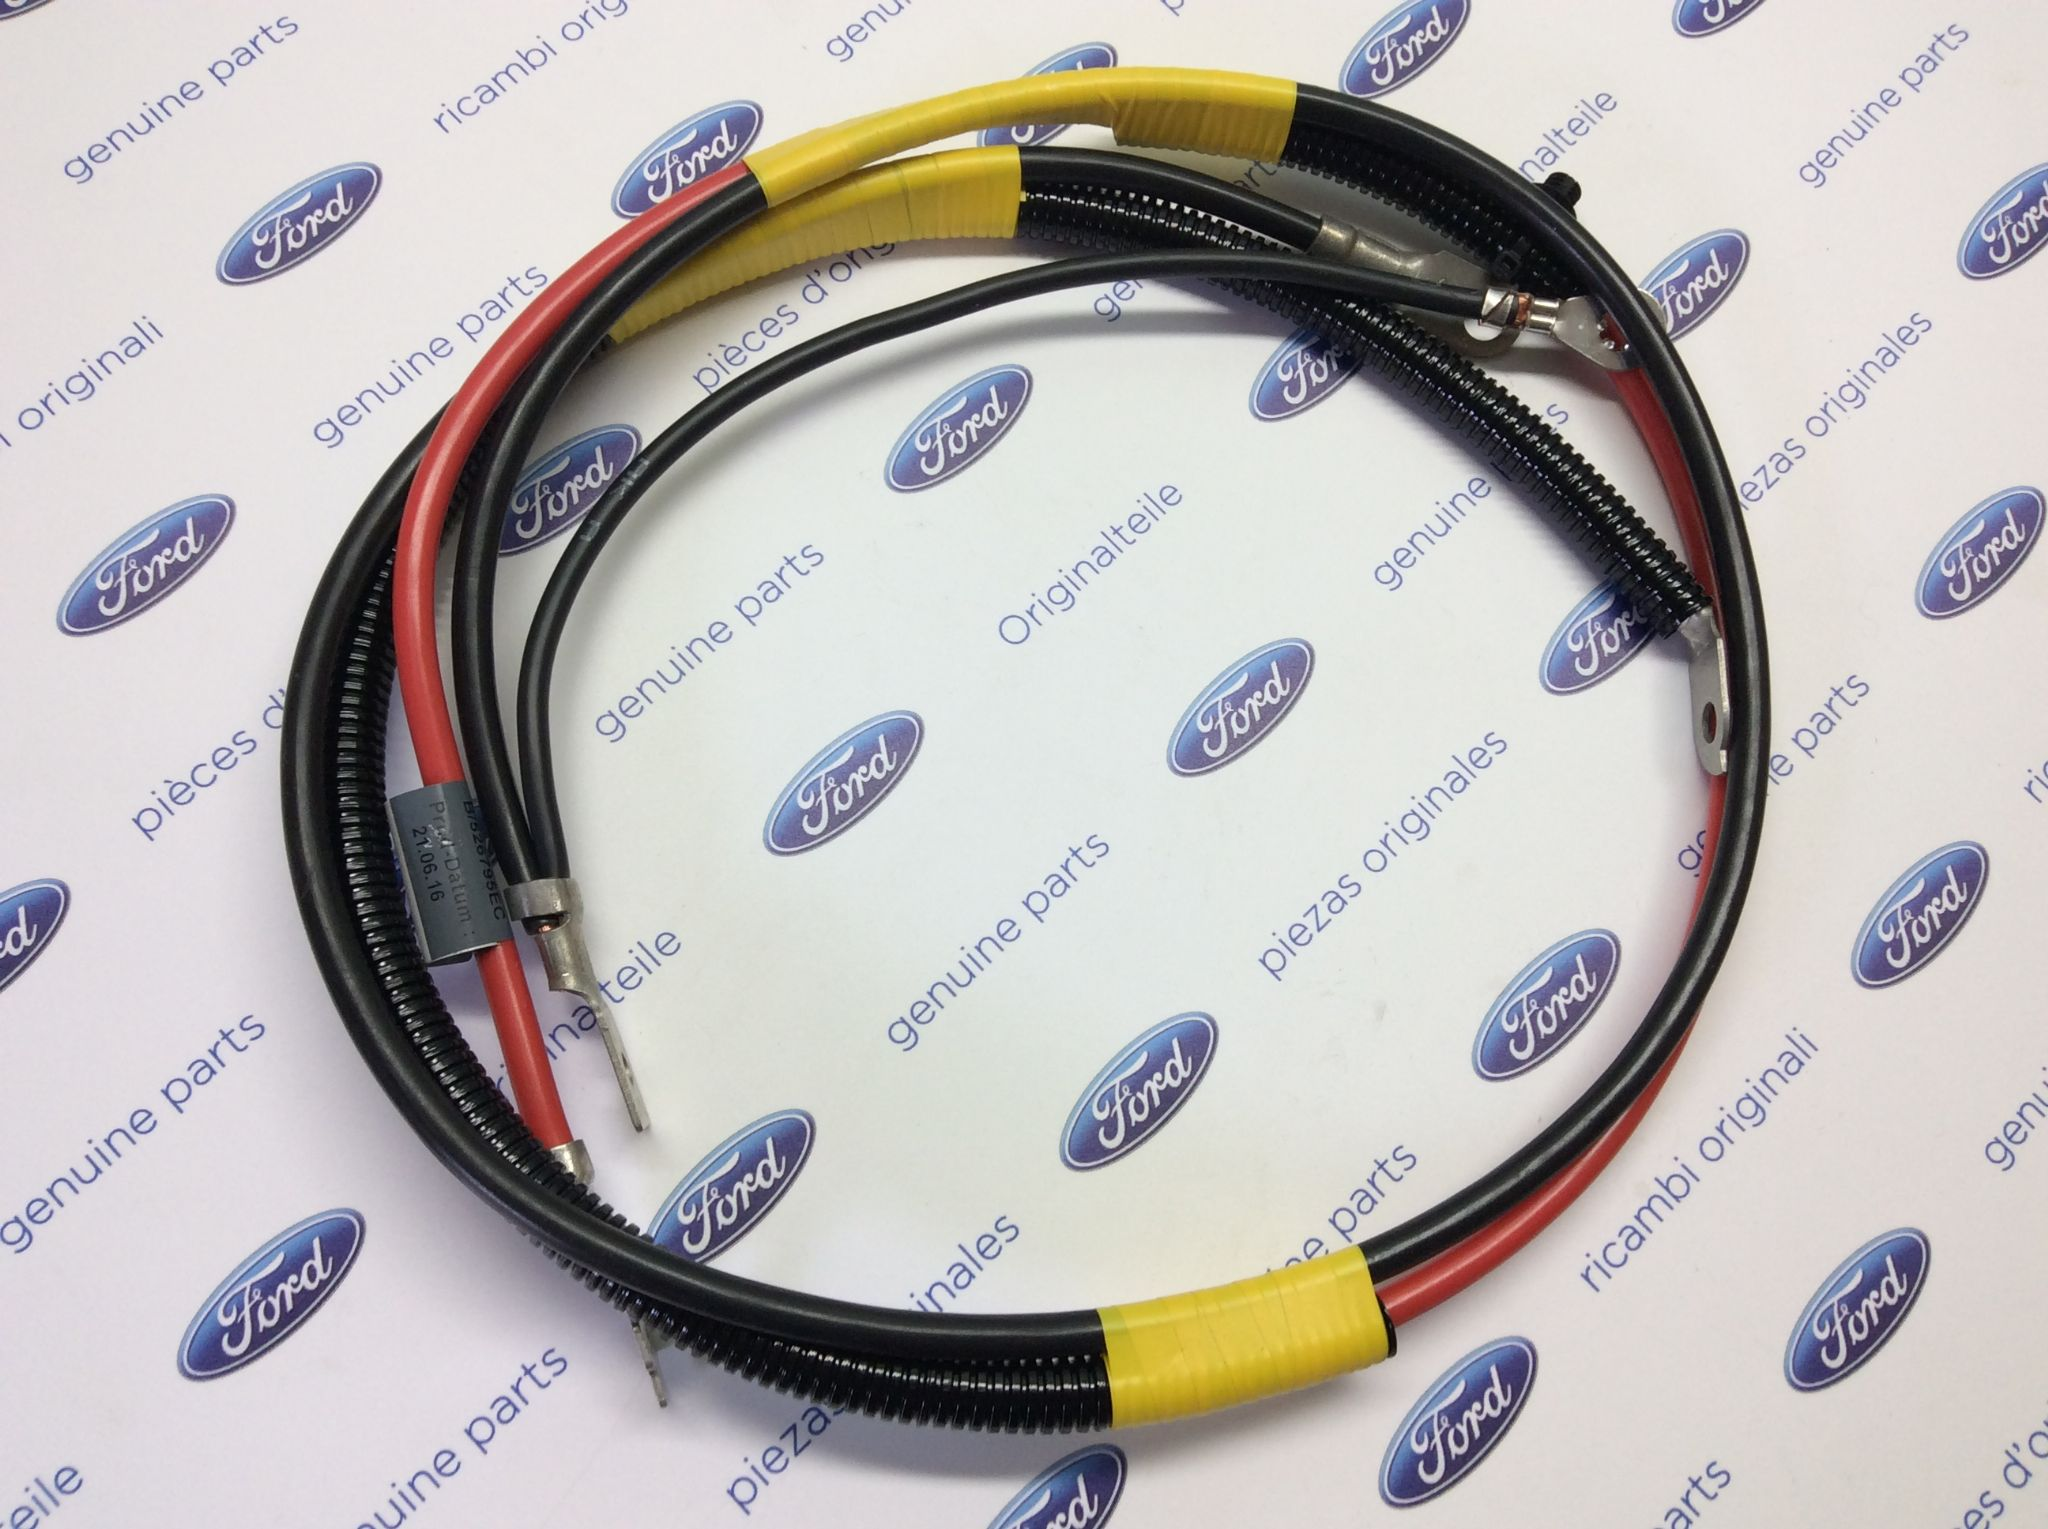 Home Mk3 New Parts Mechanical Ford Rs Turbo Sereis One Genuine Battery Cables